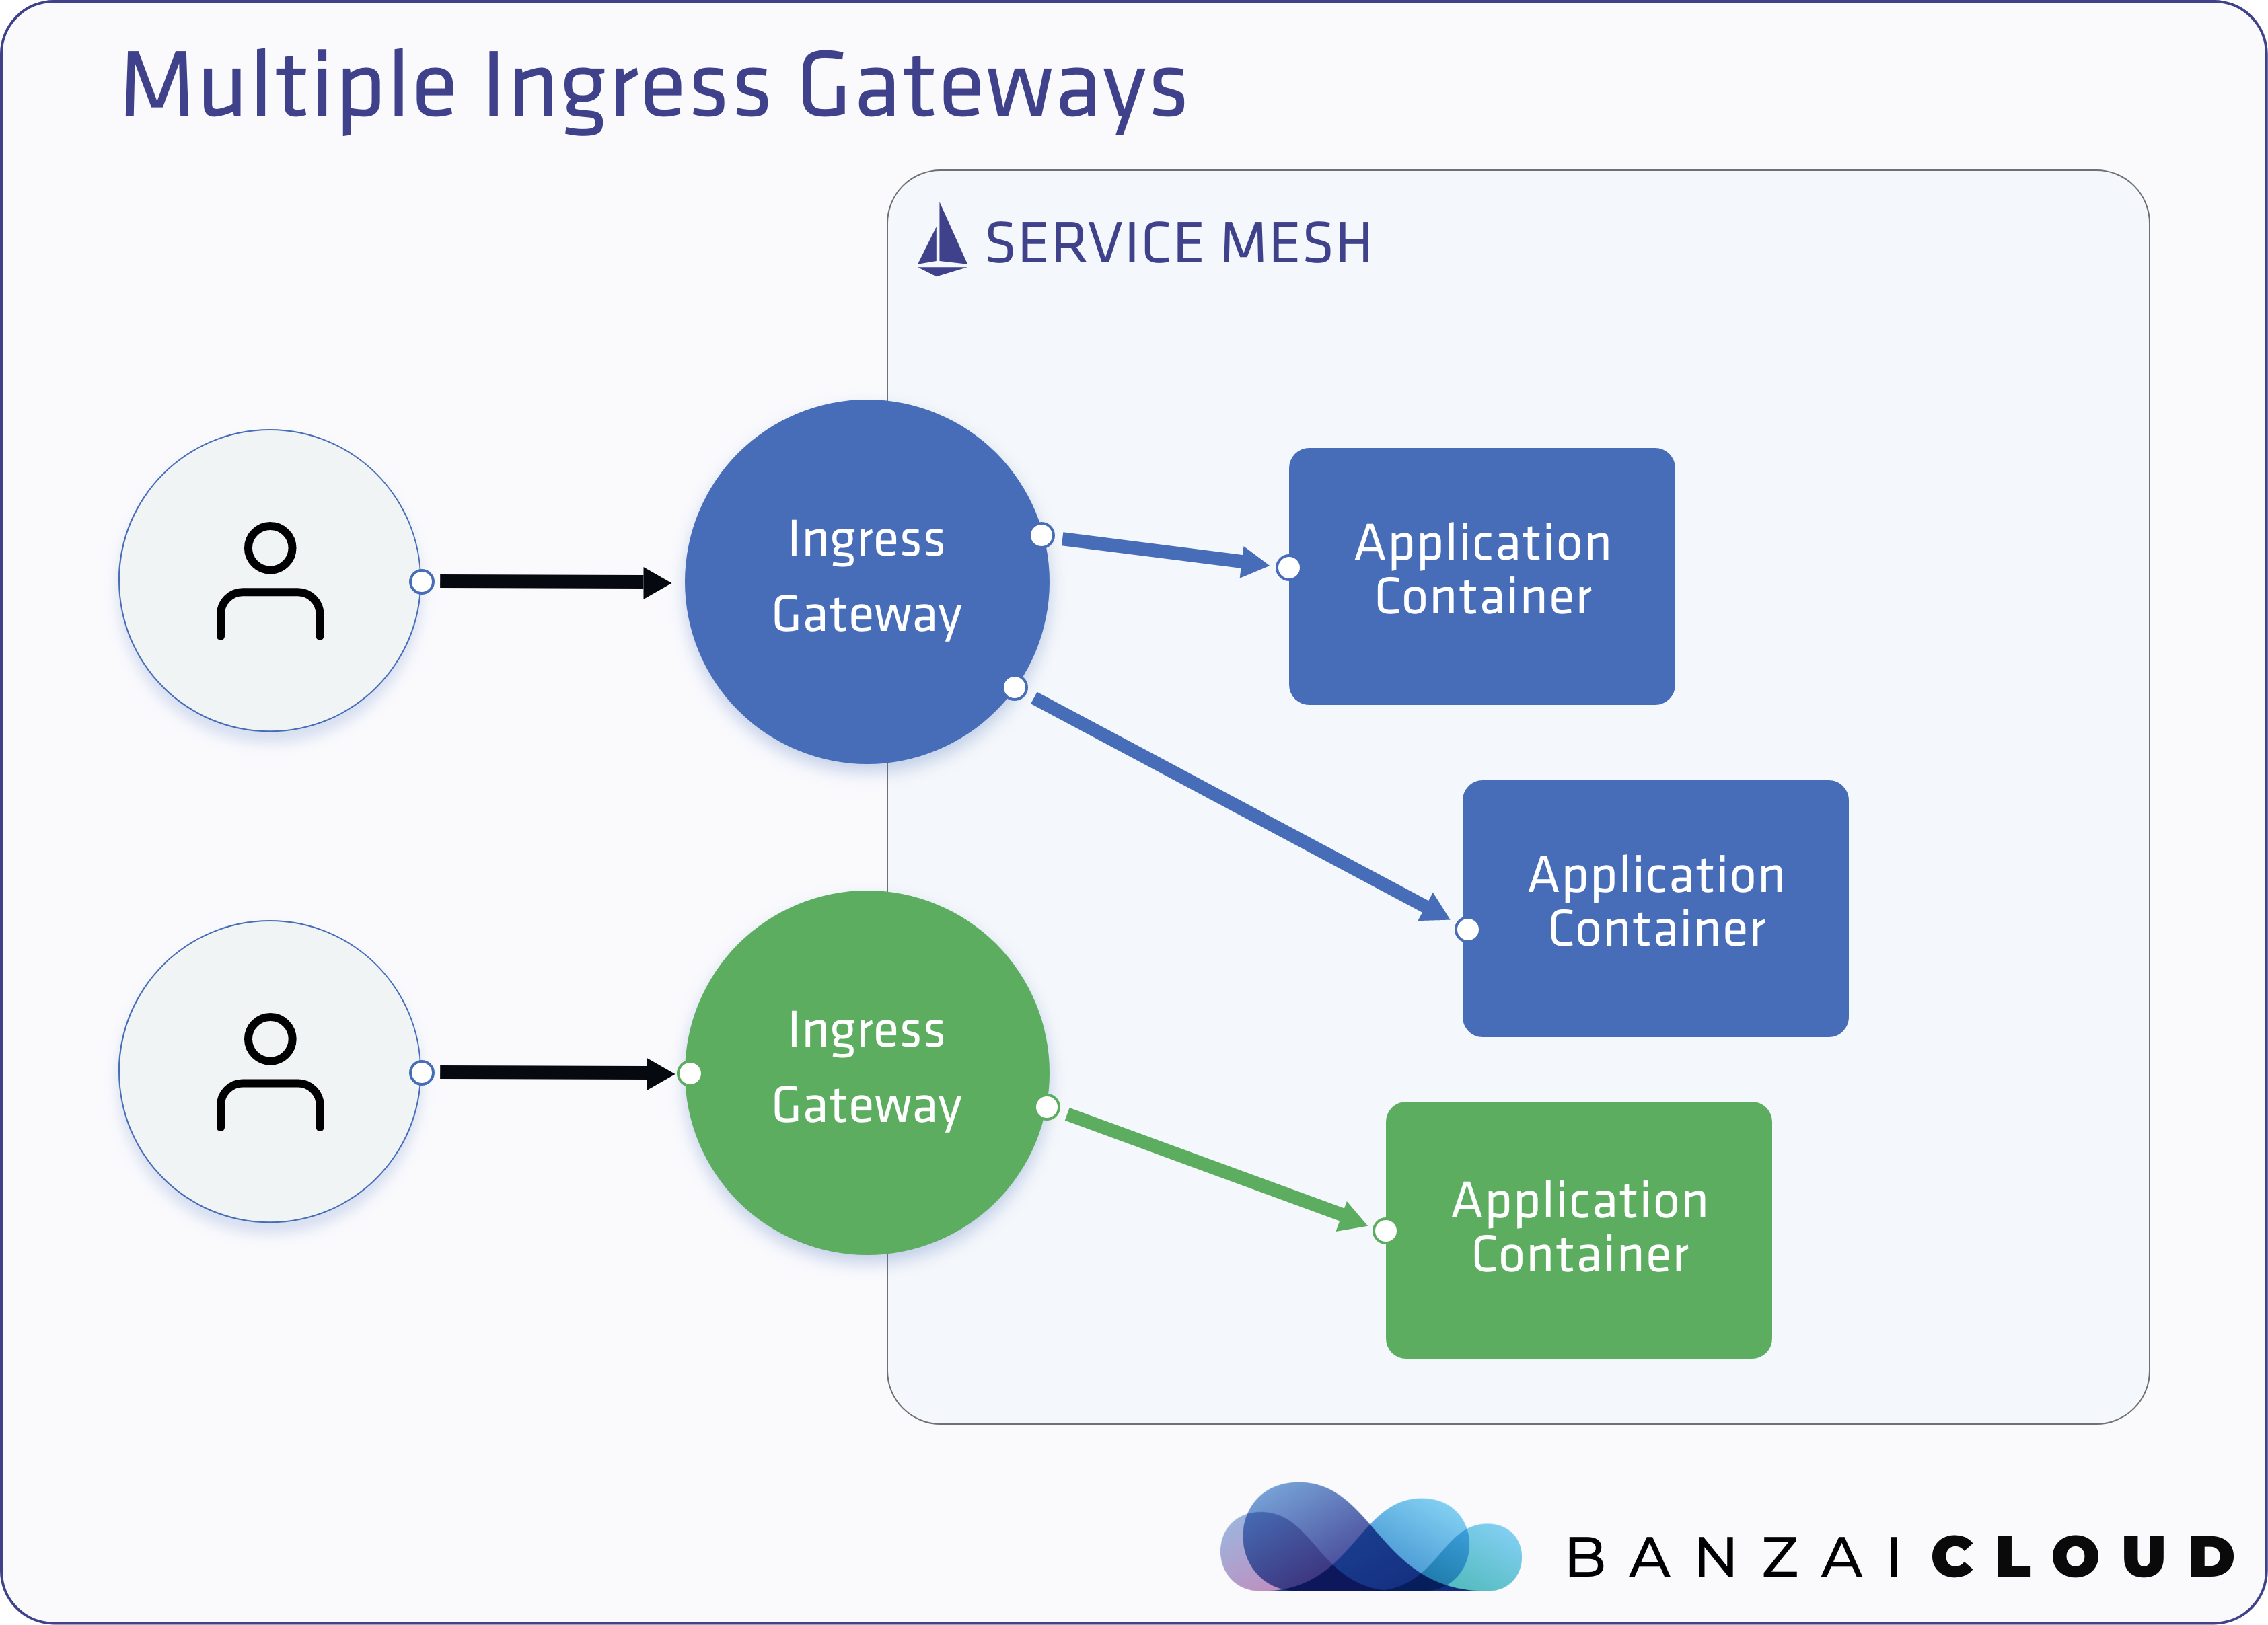 Multiple Ingress Gateways